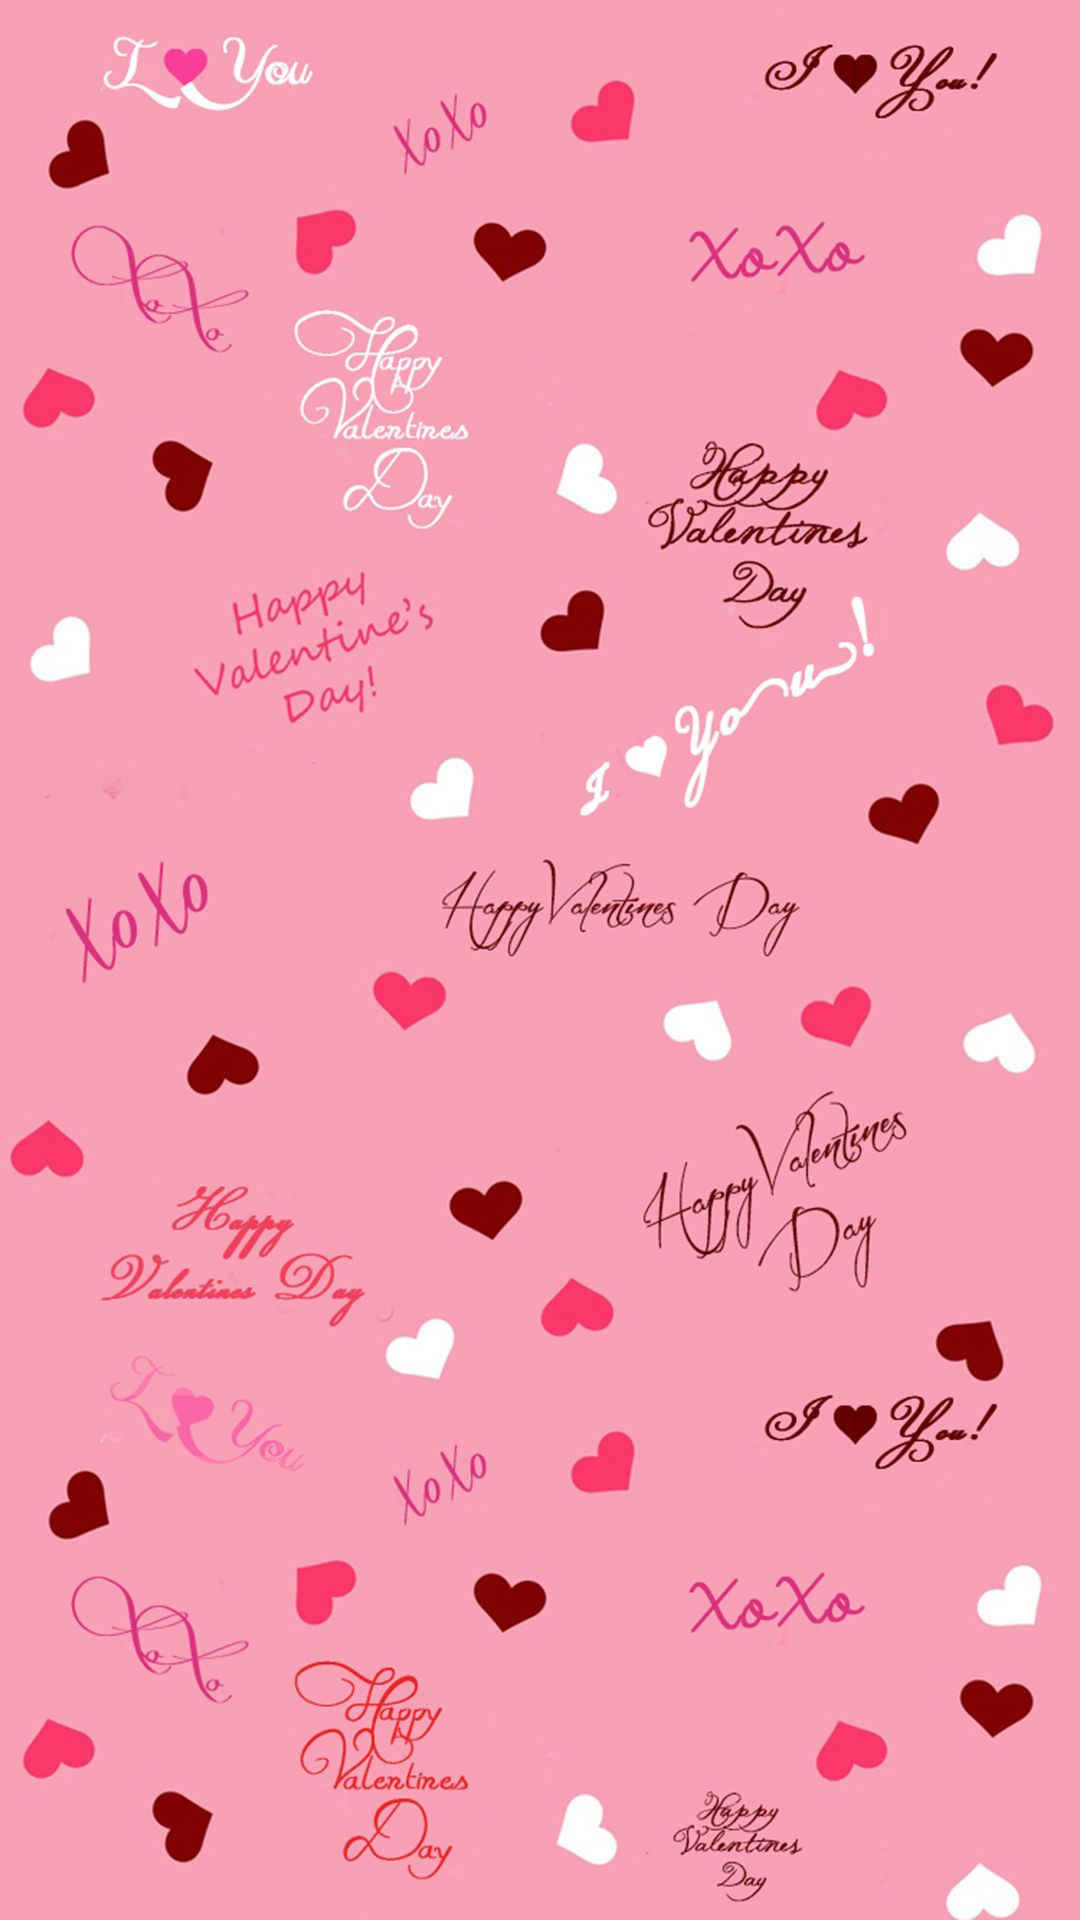 Girly Valentine Wallpapers   Top Girly Valentine Backgrounds 1080x1920